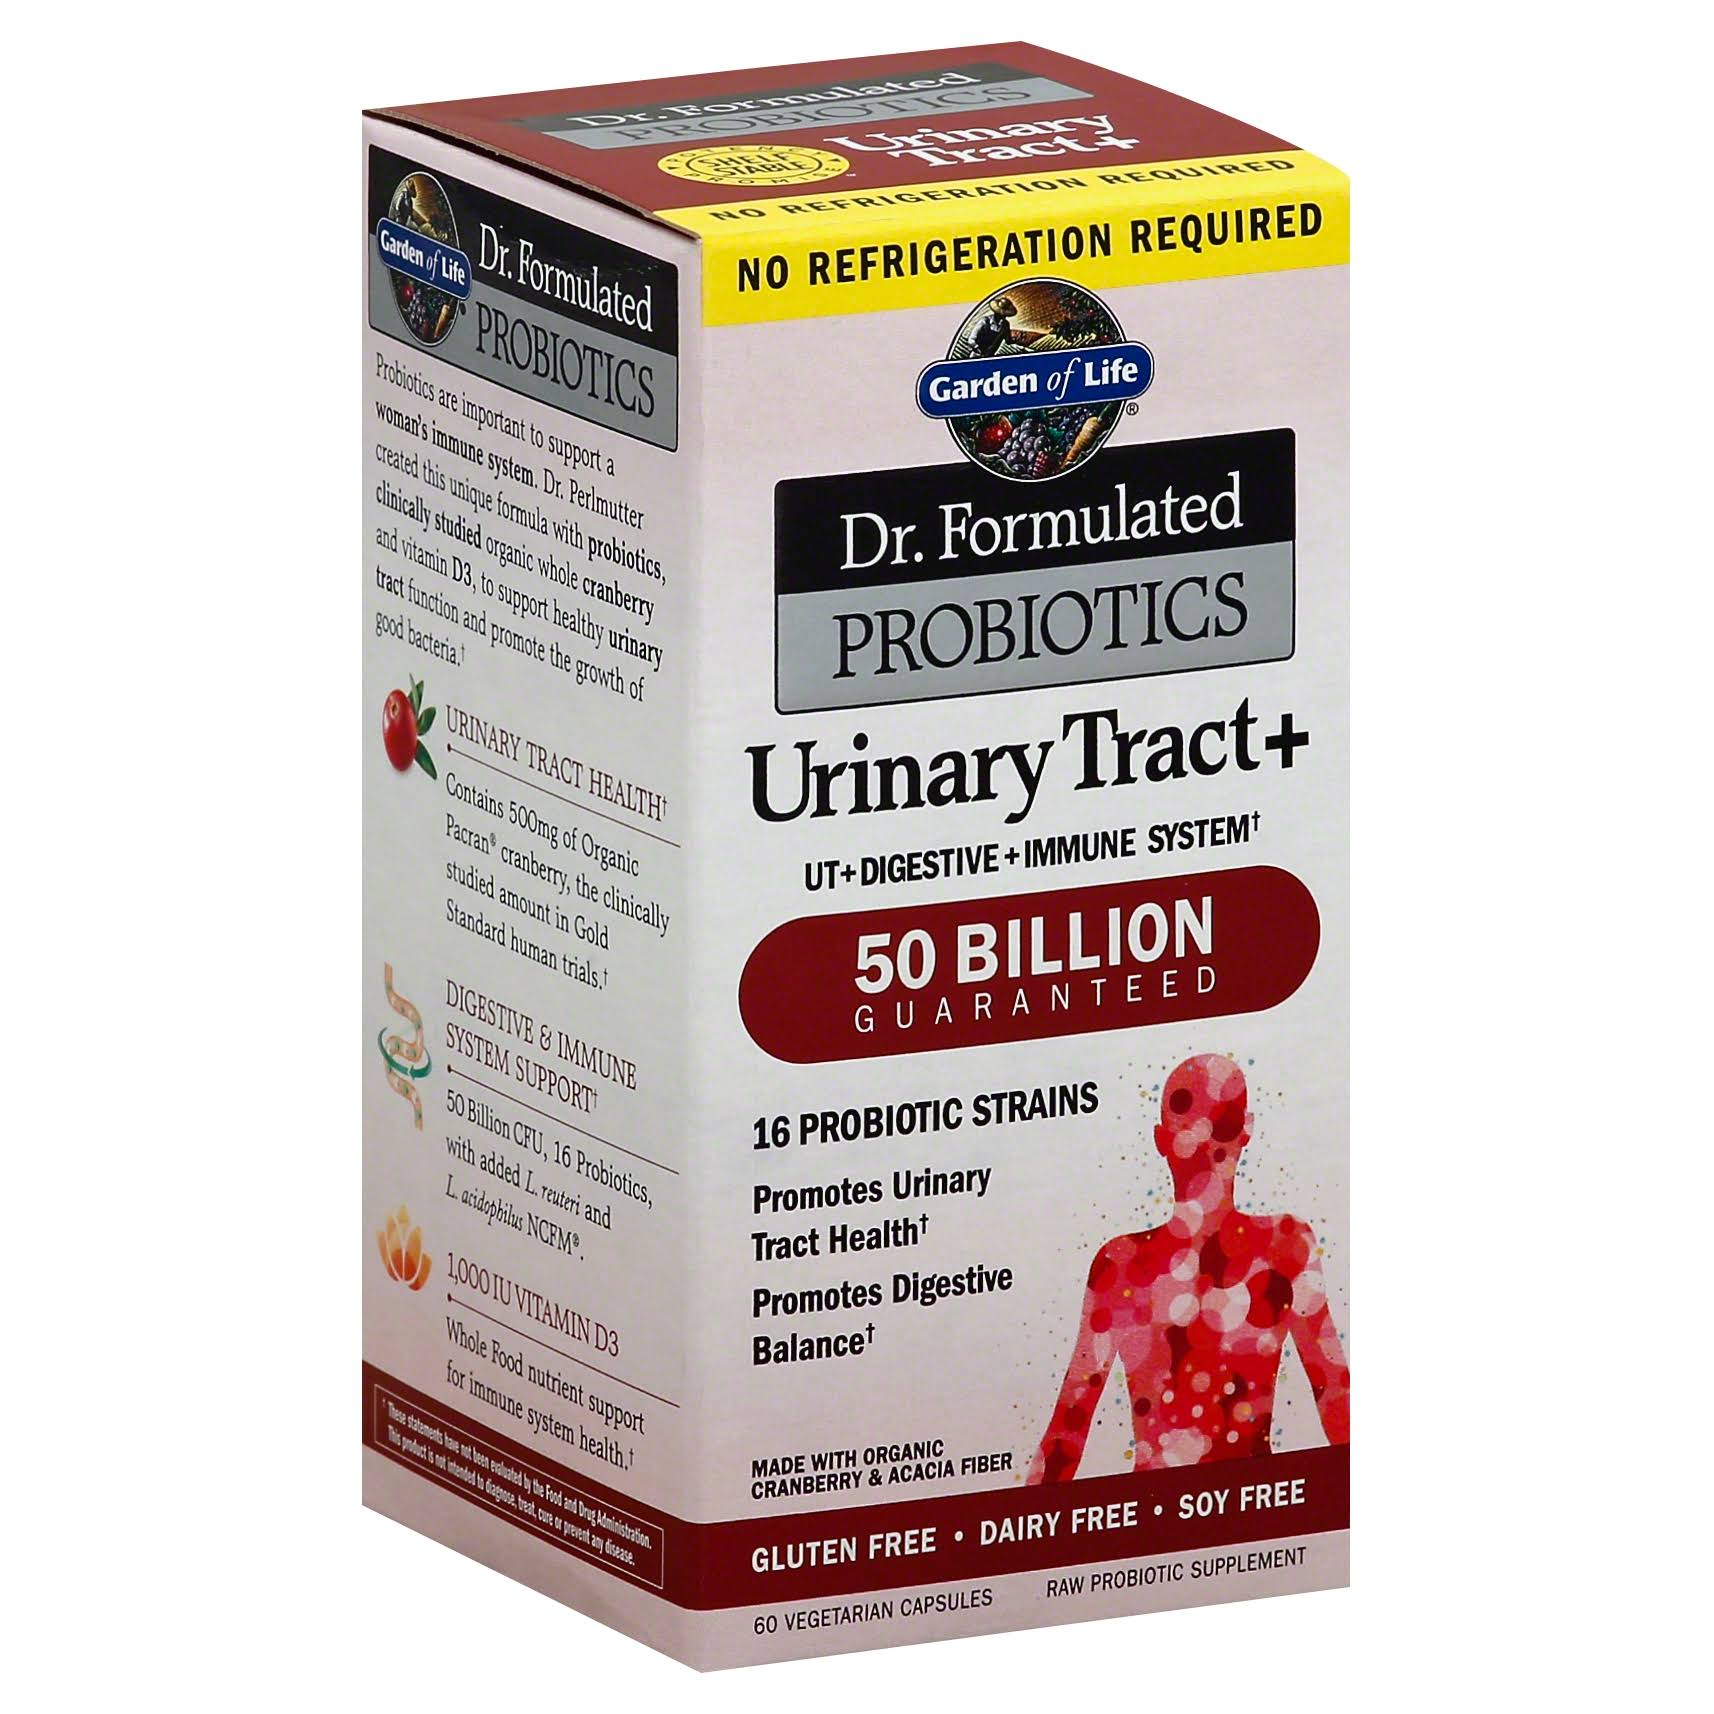 Garden of Life Dr. Formulated Probiotics Urinary Tract Plus Supplement - 60ct